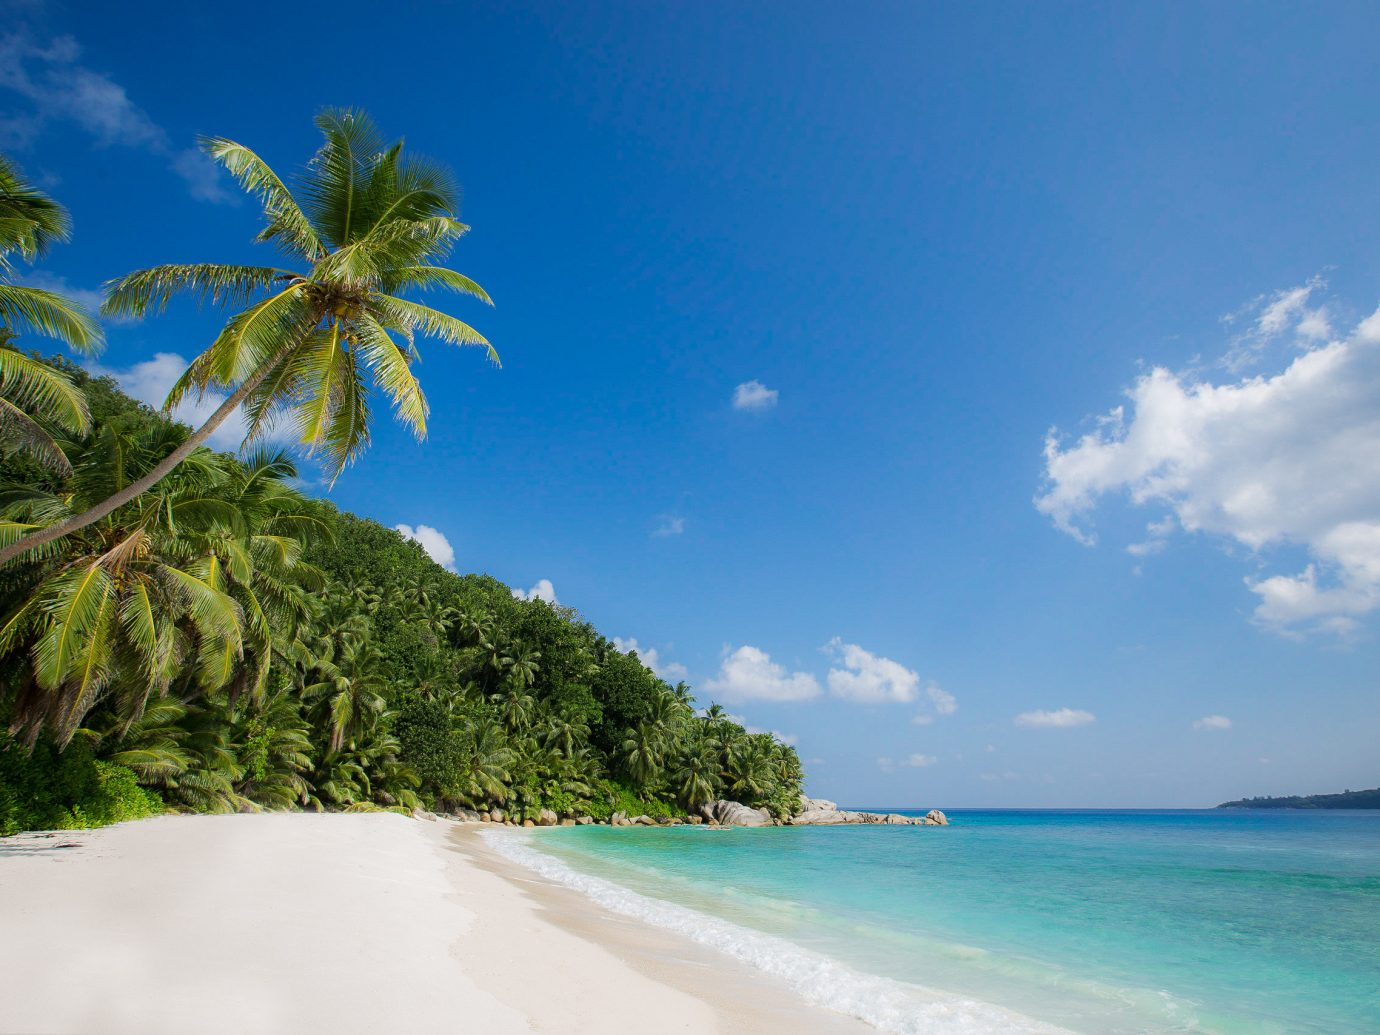 Islands Trip Ideas sky outdoor tree water Beach landform geographical feature body of water Nature caribbean Sea Coast shore Ocean vacation horizon palm tropics arecales Island bay Lagoon cape islet sandy day distance